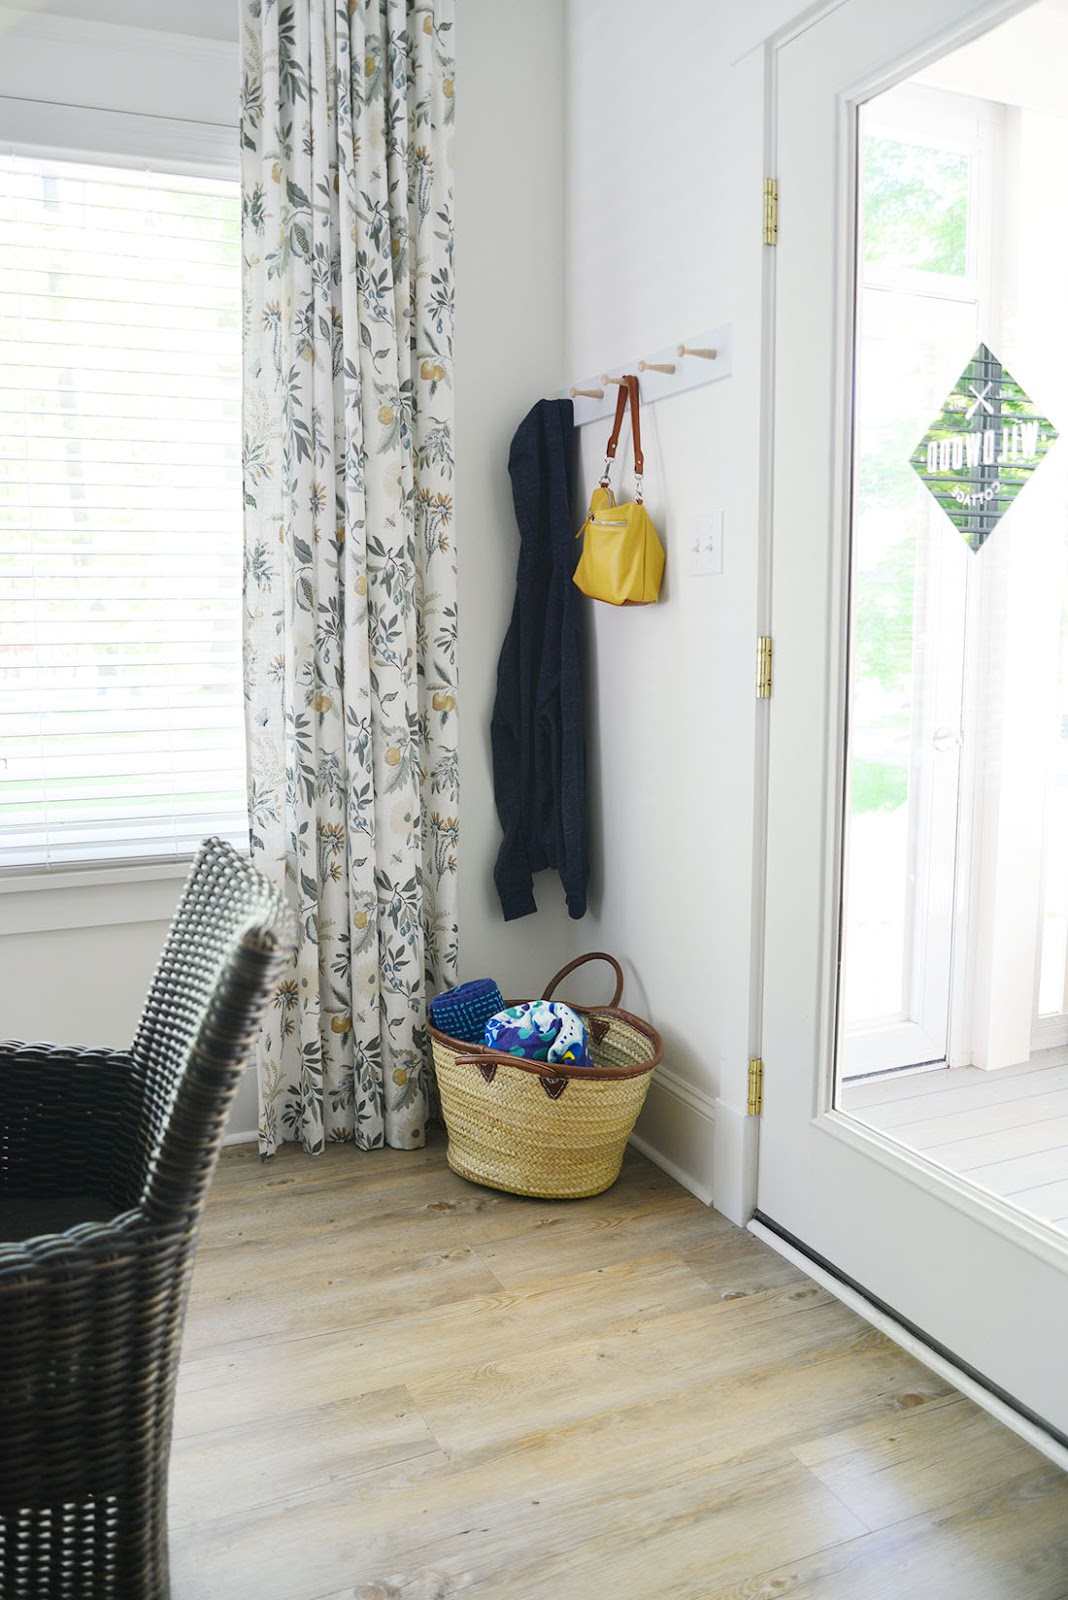 diy shaker peg rail, woven market tote basket with towels, fleur botanical la mer fabric, glass door with decal